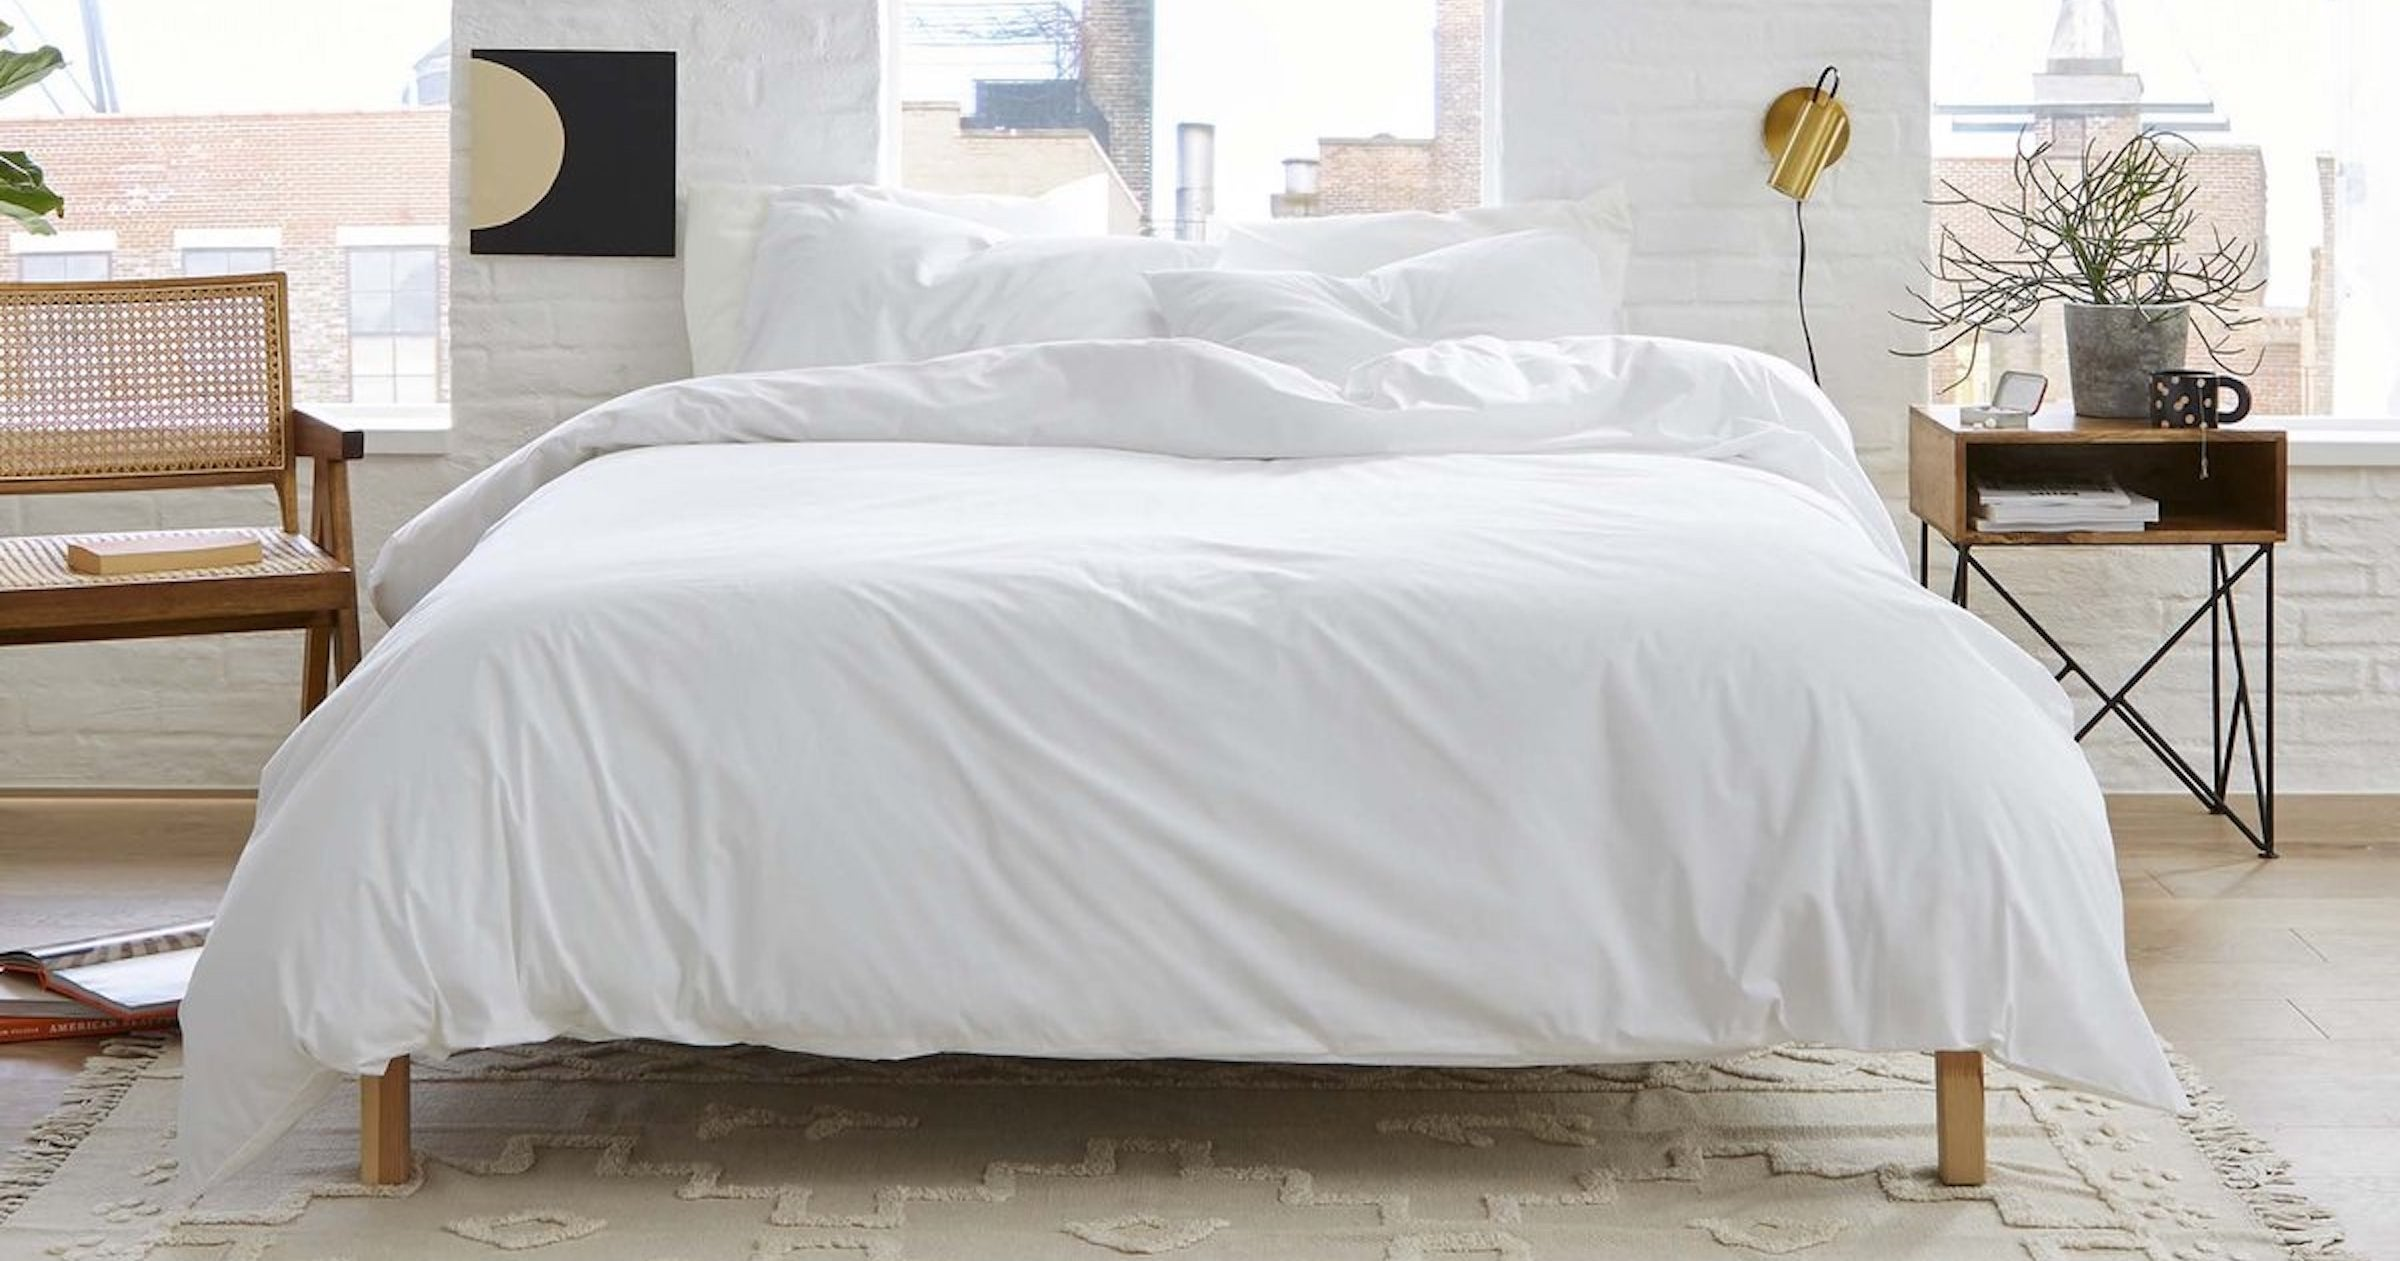 It's THE Weekend To Buy A New Mattress ( Other Stuff) On Super Sale